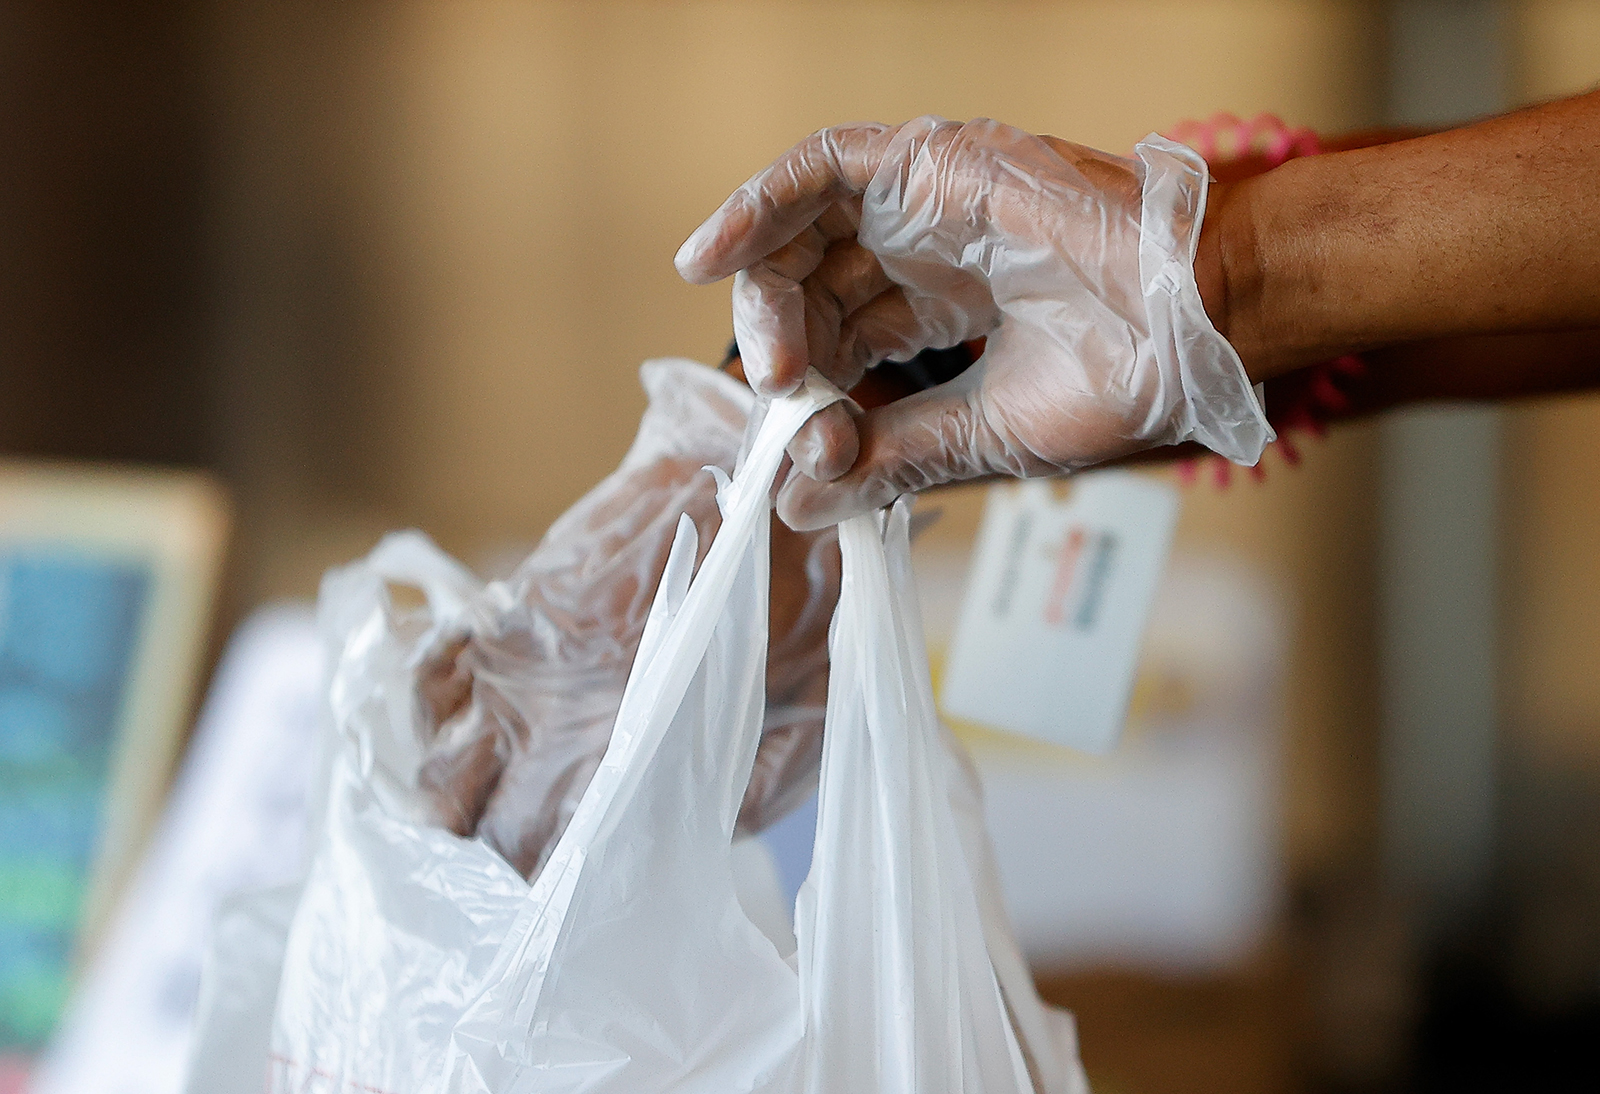 An employee is seen bringing to-go orders to the bar while wearing disposable gloves in Bad Daddy's Burger Bar as it reopened for dine-in seating on April 27, in Decatur, Georgia.